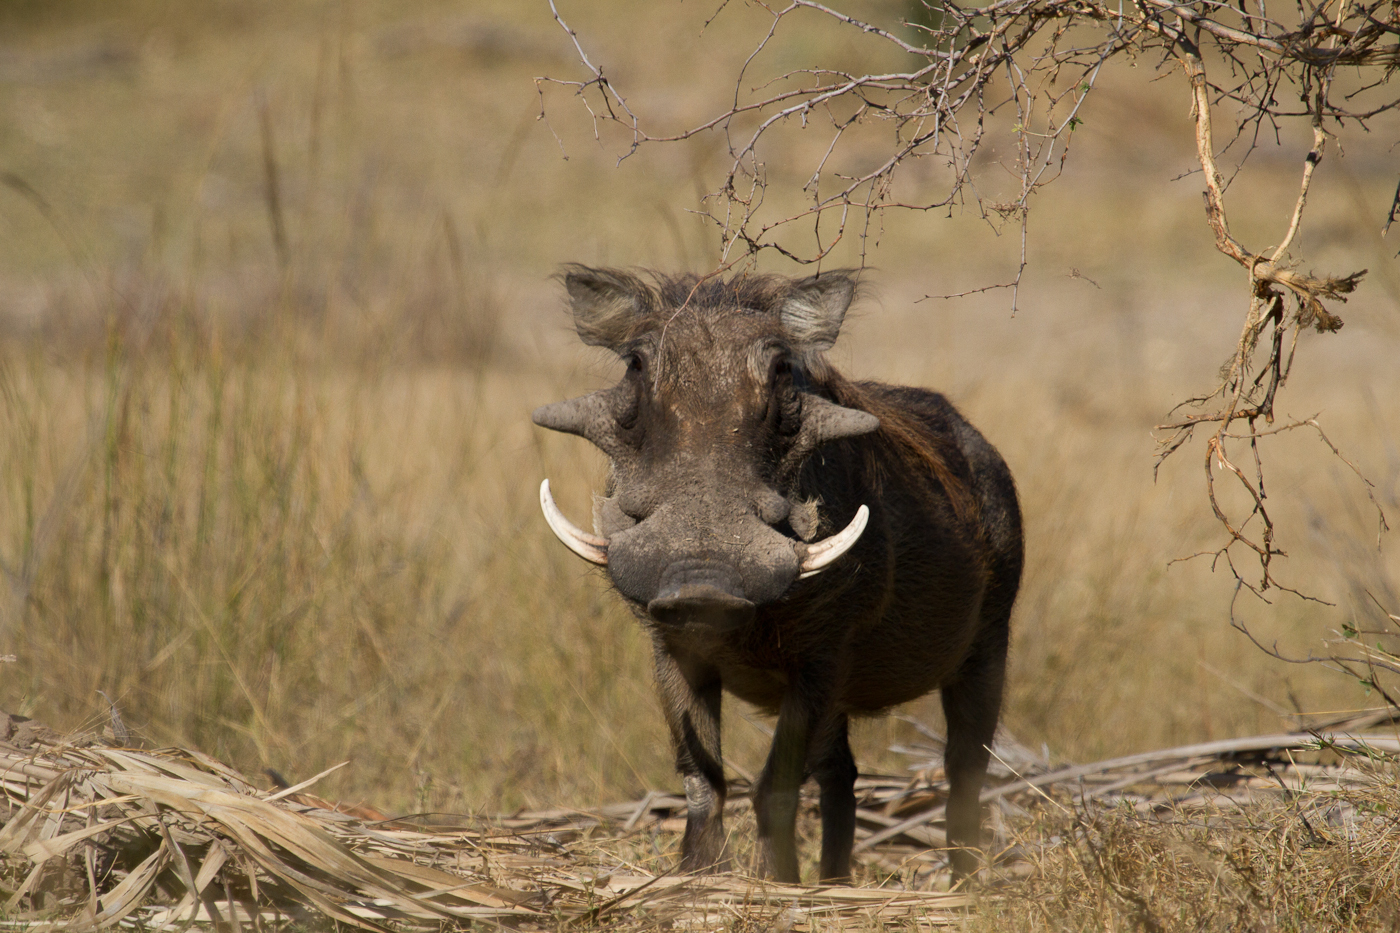 When I was a young warthog!